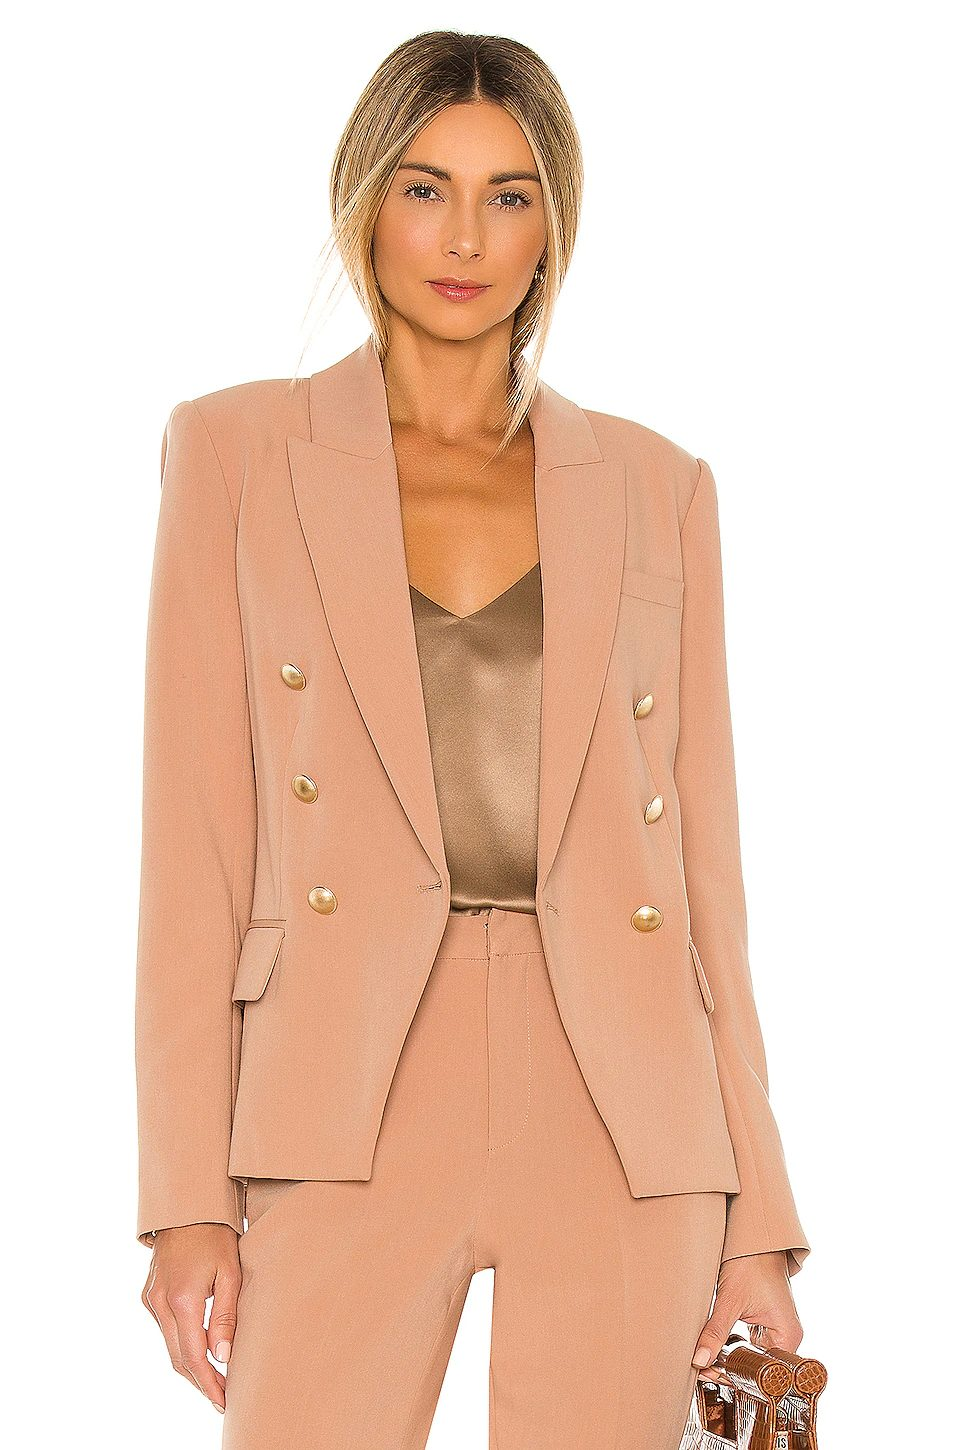 Beige blazer suit with gold buttons and pants